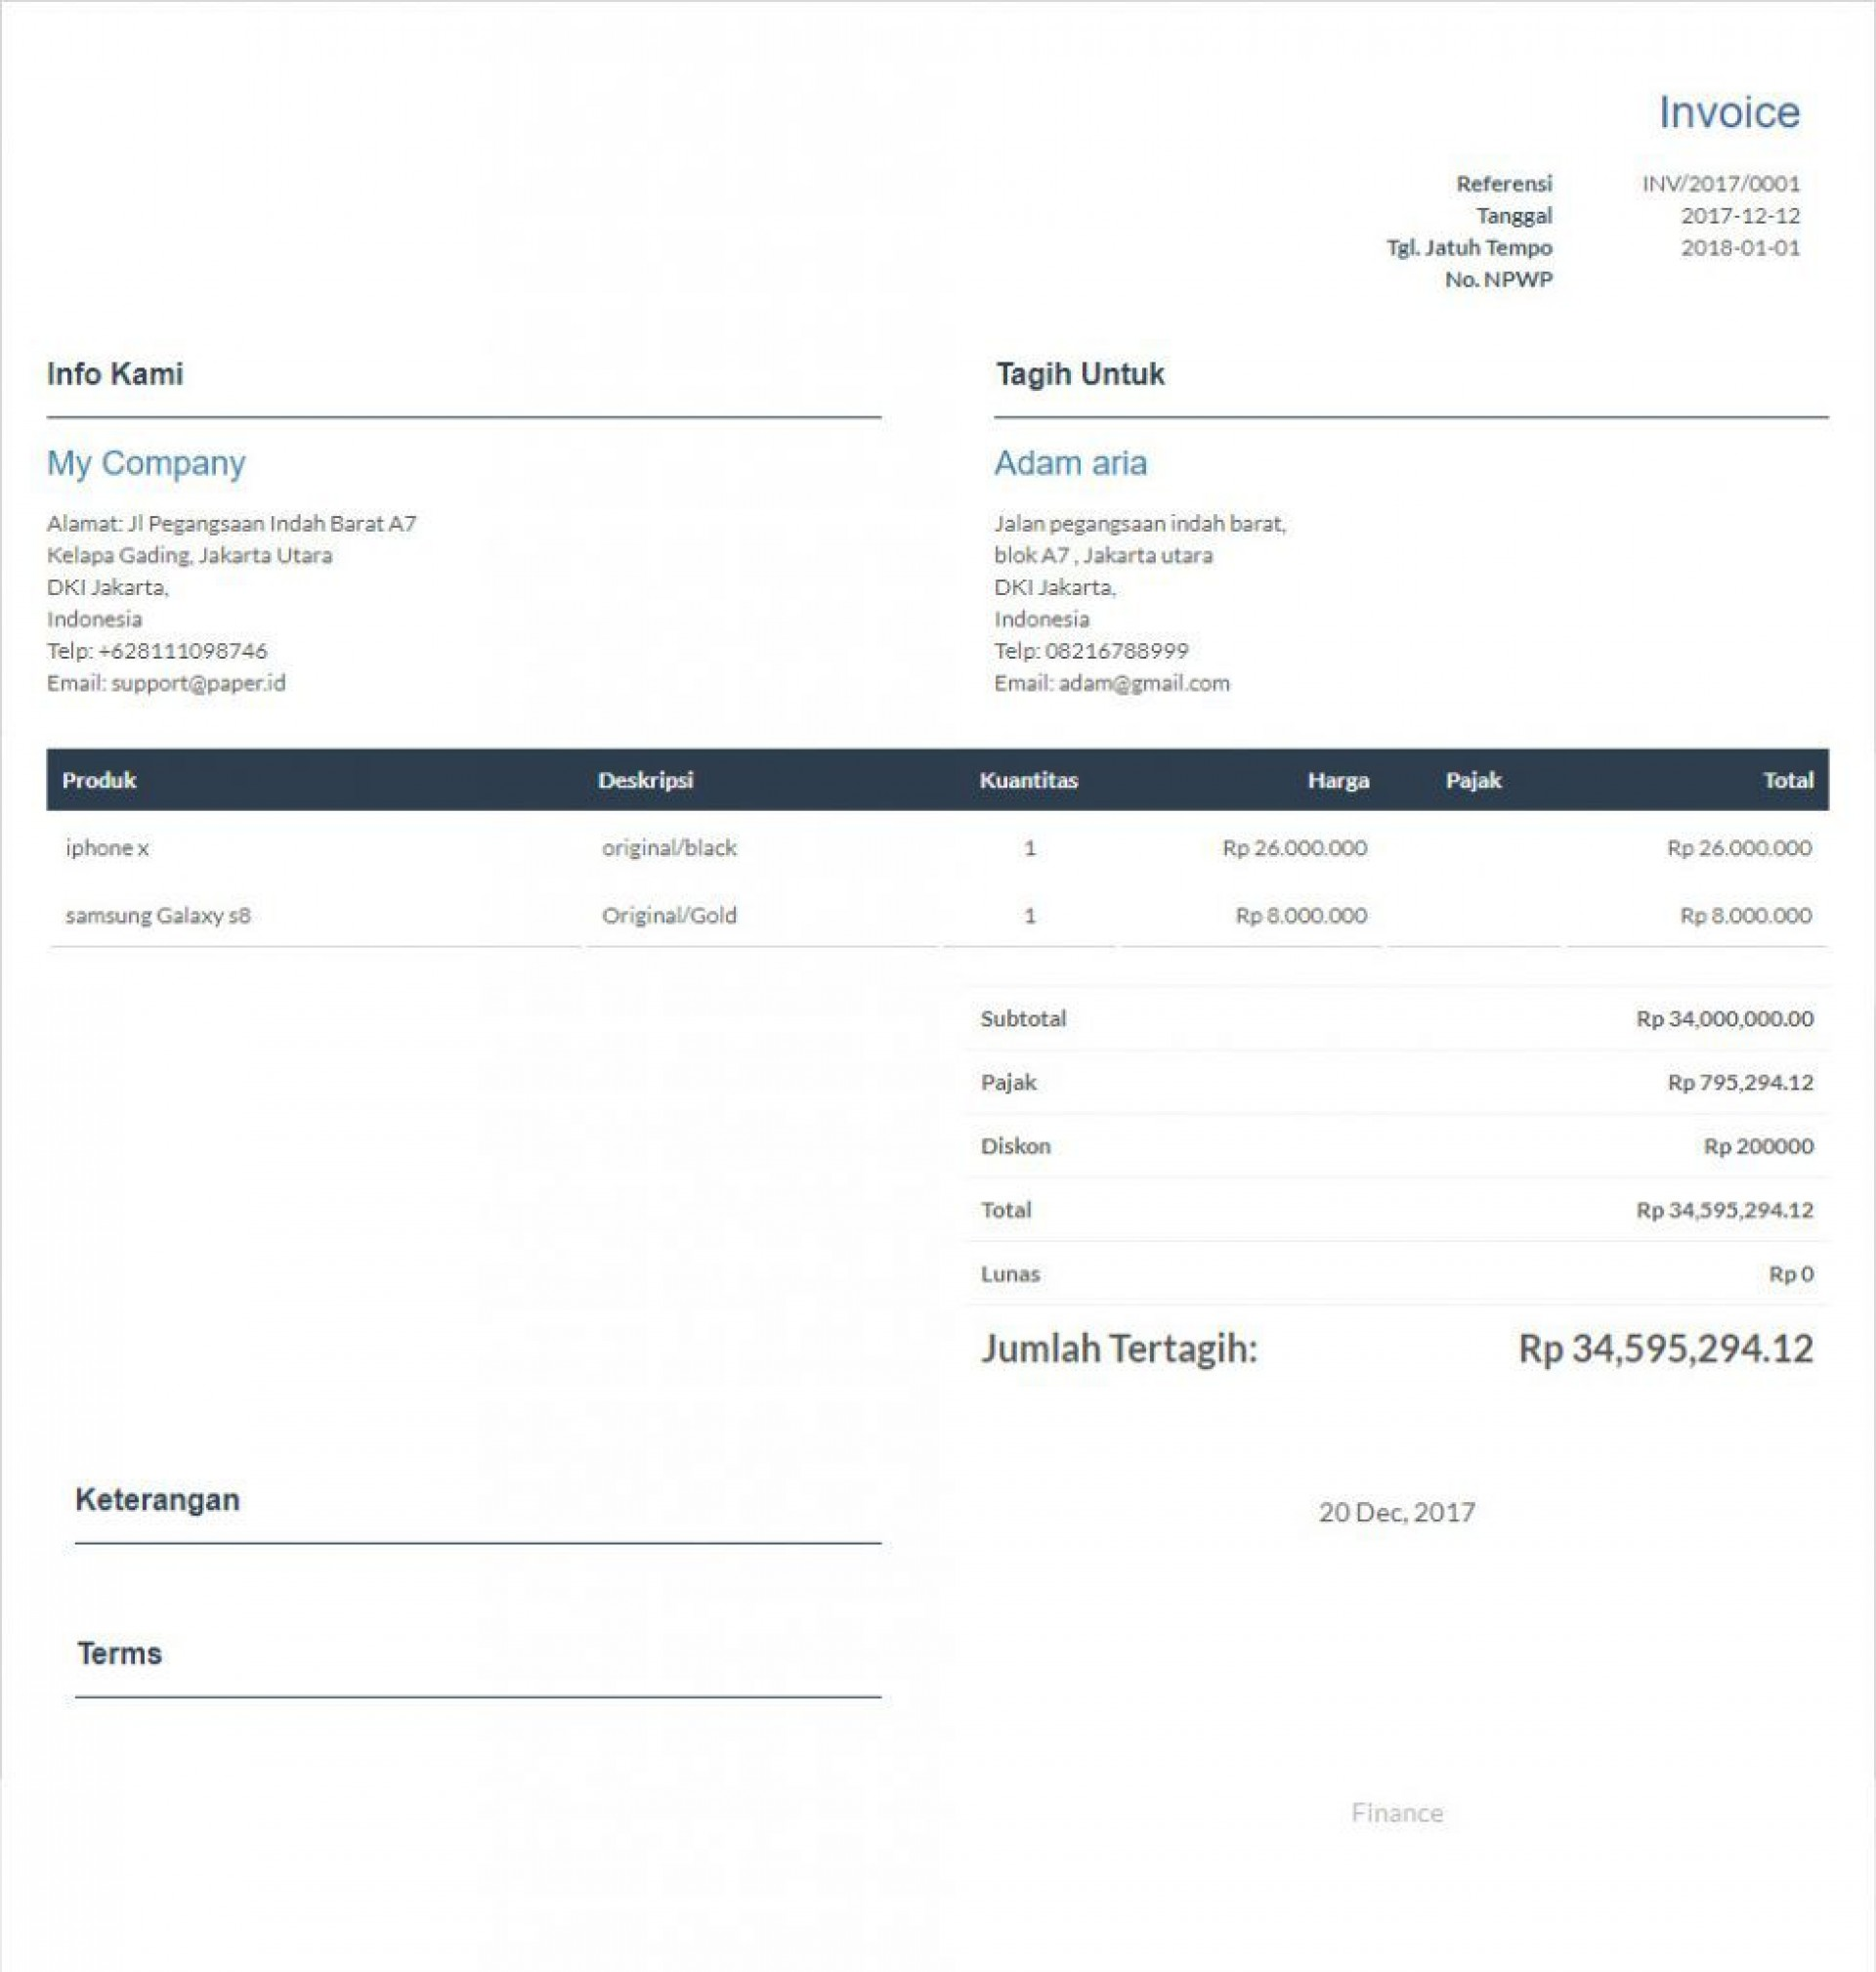 009 Imposing Invoice Template Free Download High Definition  Downloads Responsive Html Excel1920